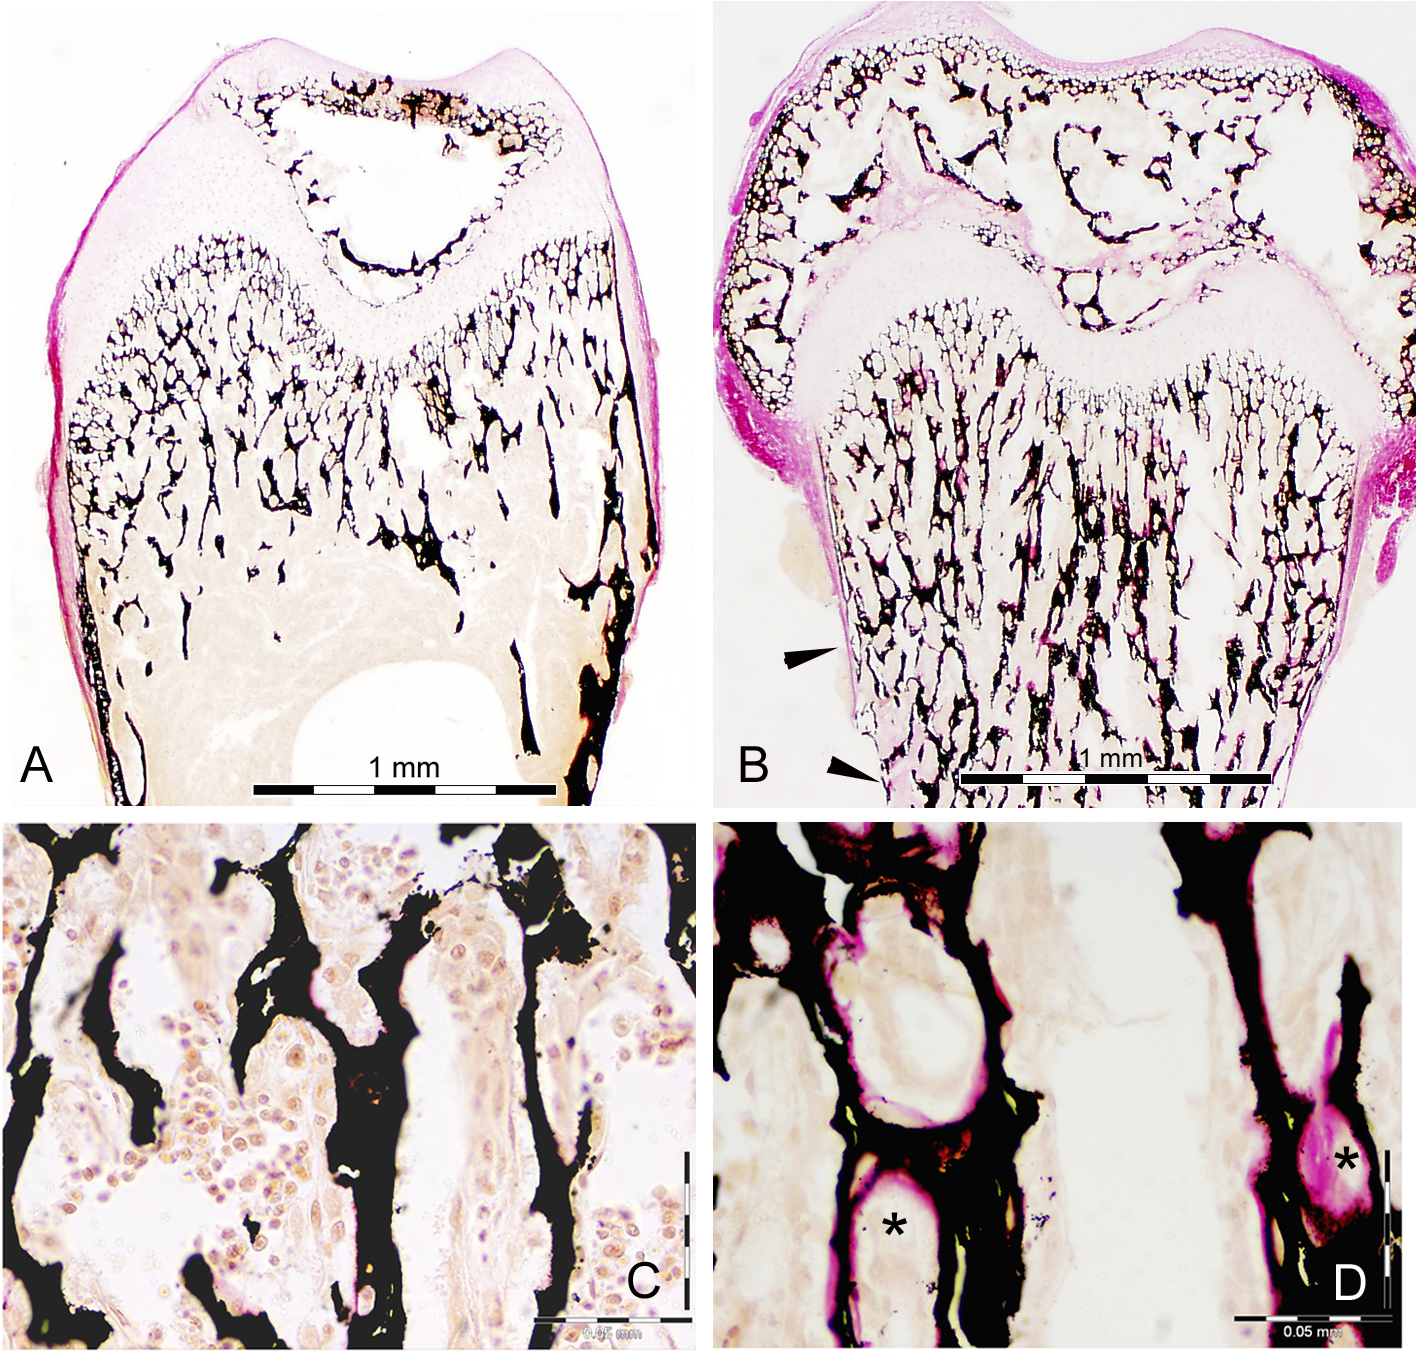 Histology of bone from WT and Snx10 KD mice.